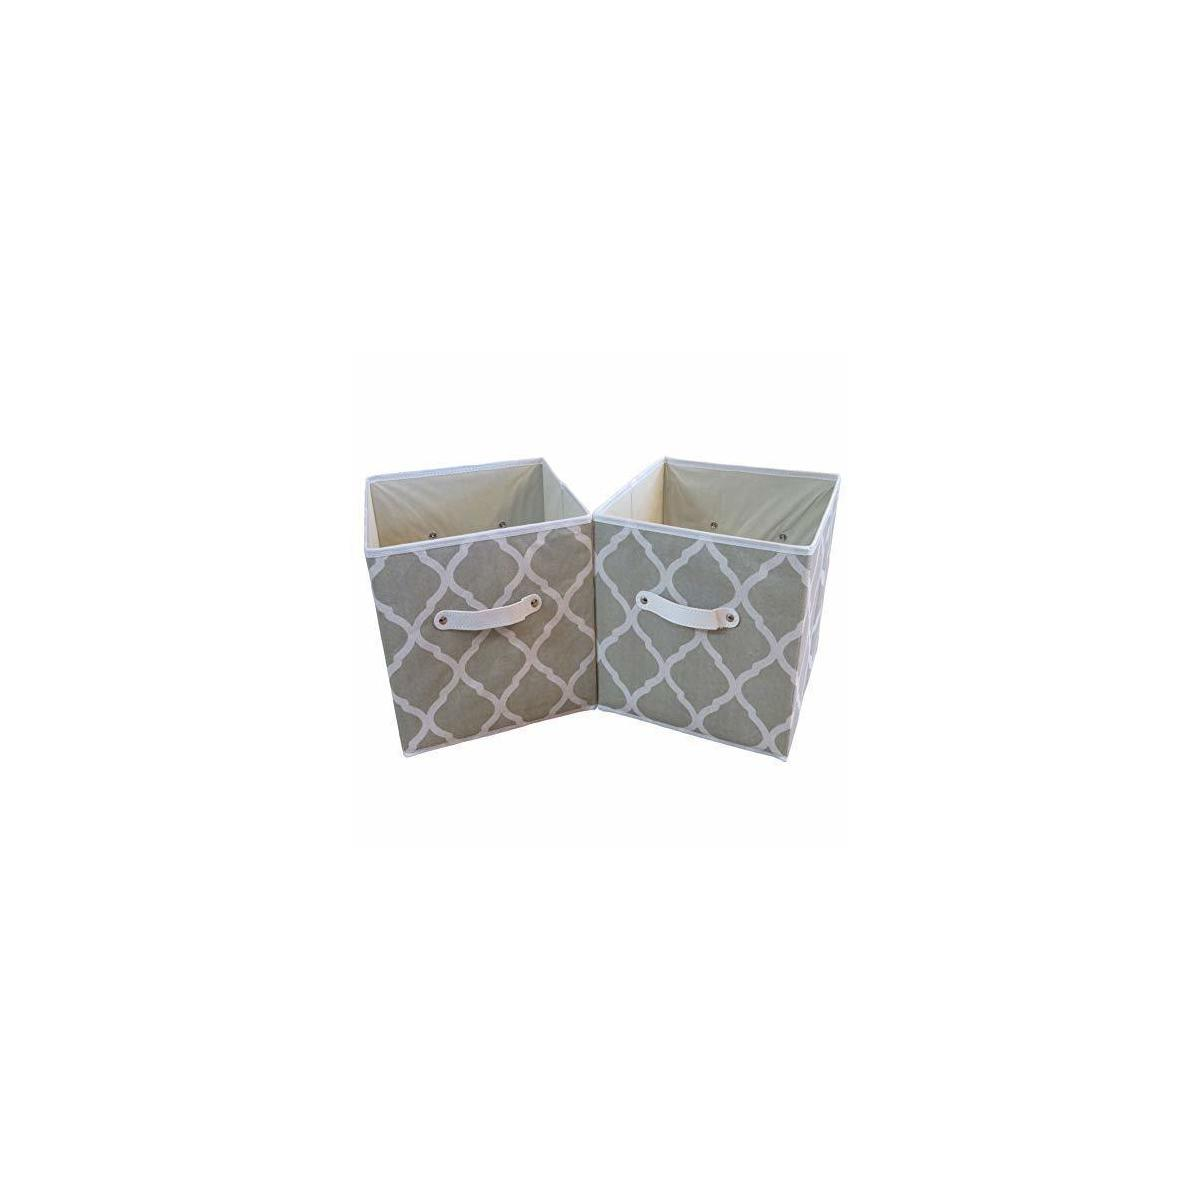 """2 Set Fabric Storage Bins -Leather Handles -11x11x11"""" -SAGE/White; USES: Storage Cube Organizer, Book, Sports Toy Box Clothes Baby Basket; Home, Nursery, Office (Without Lids)"""